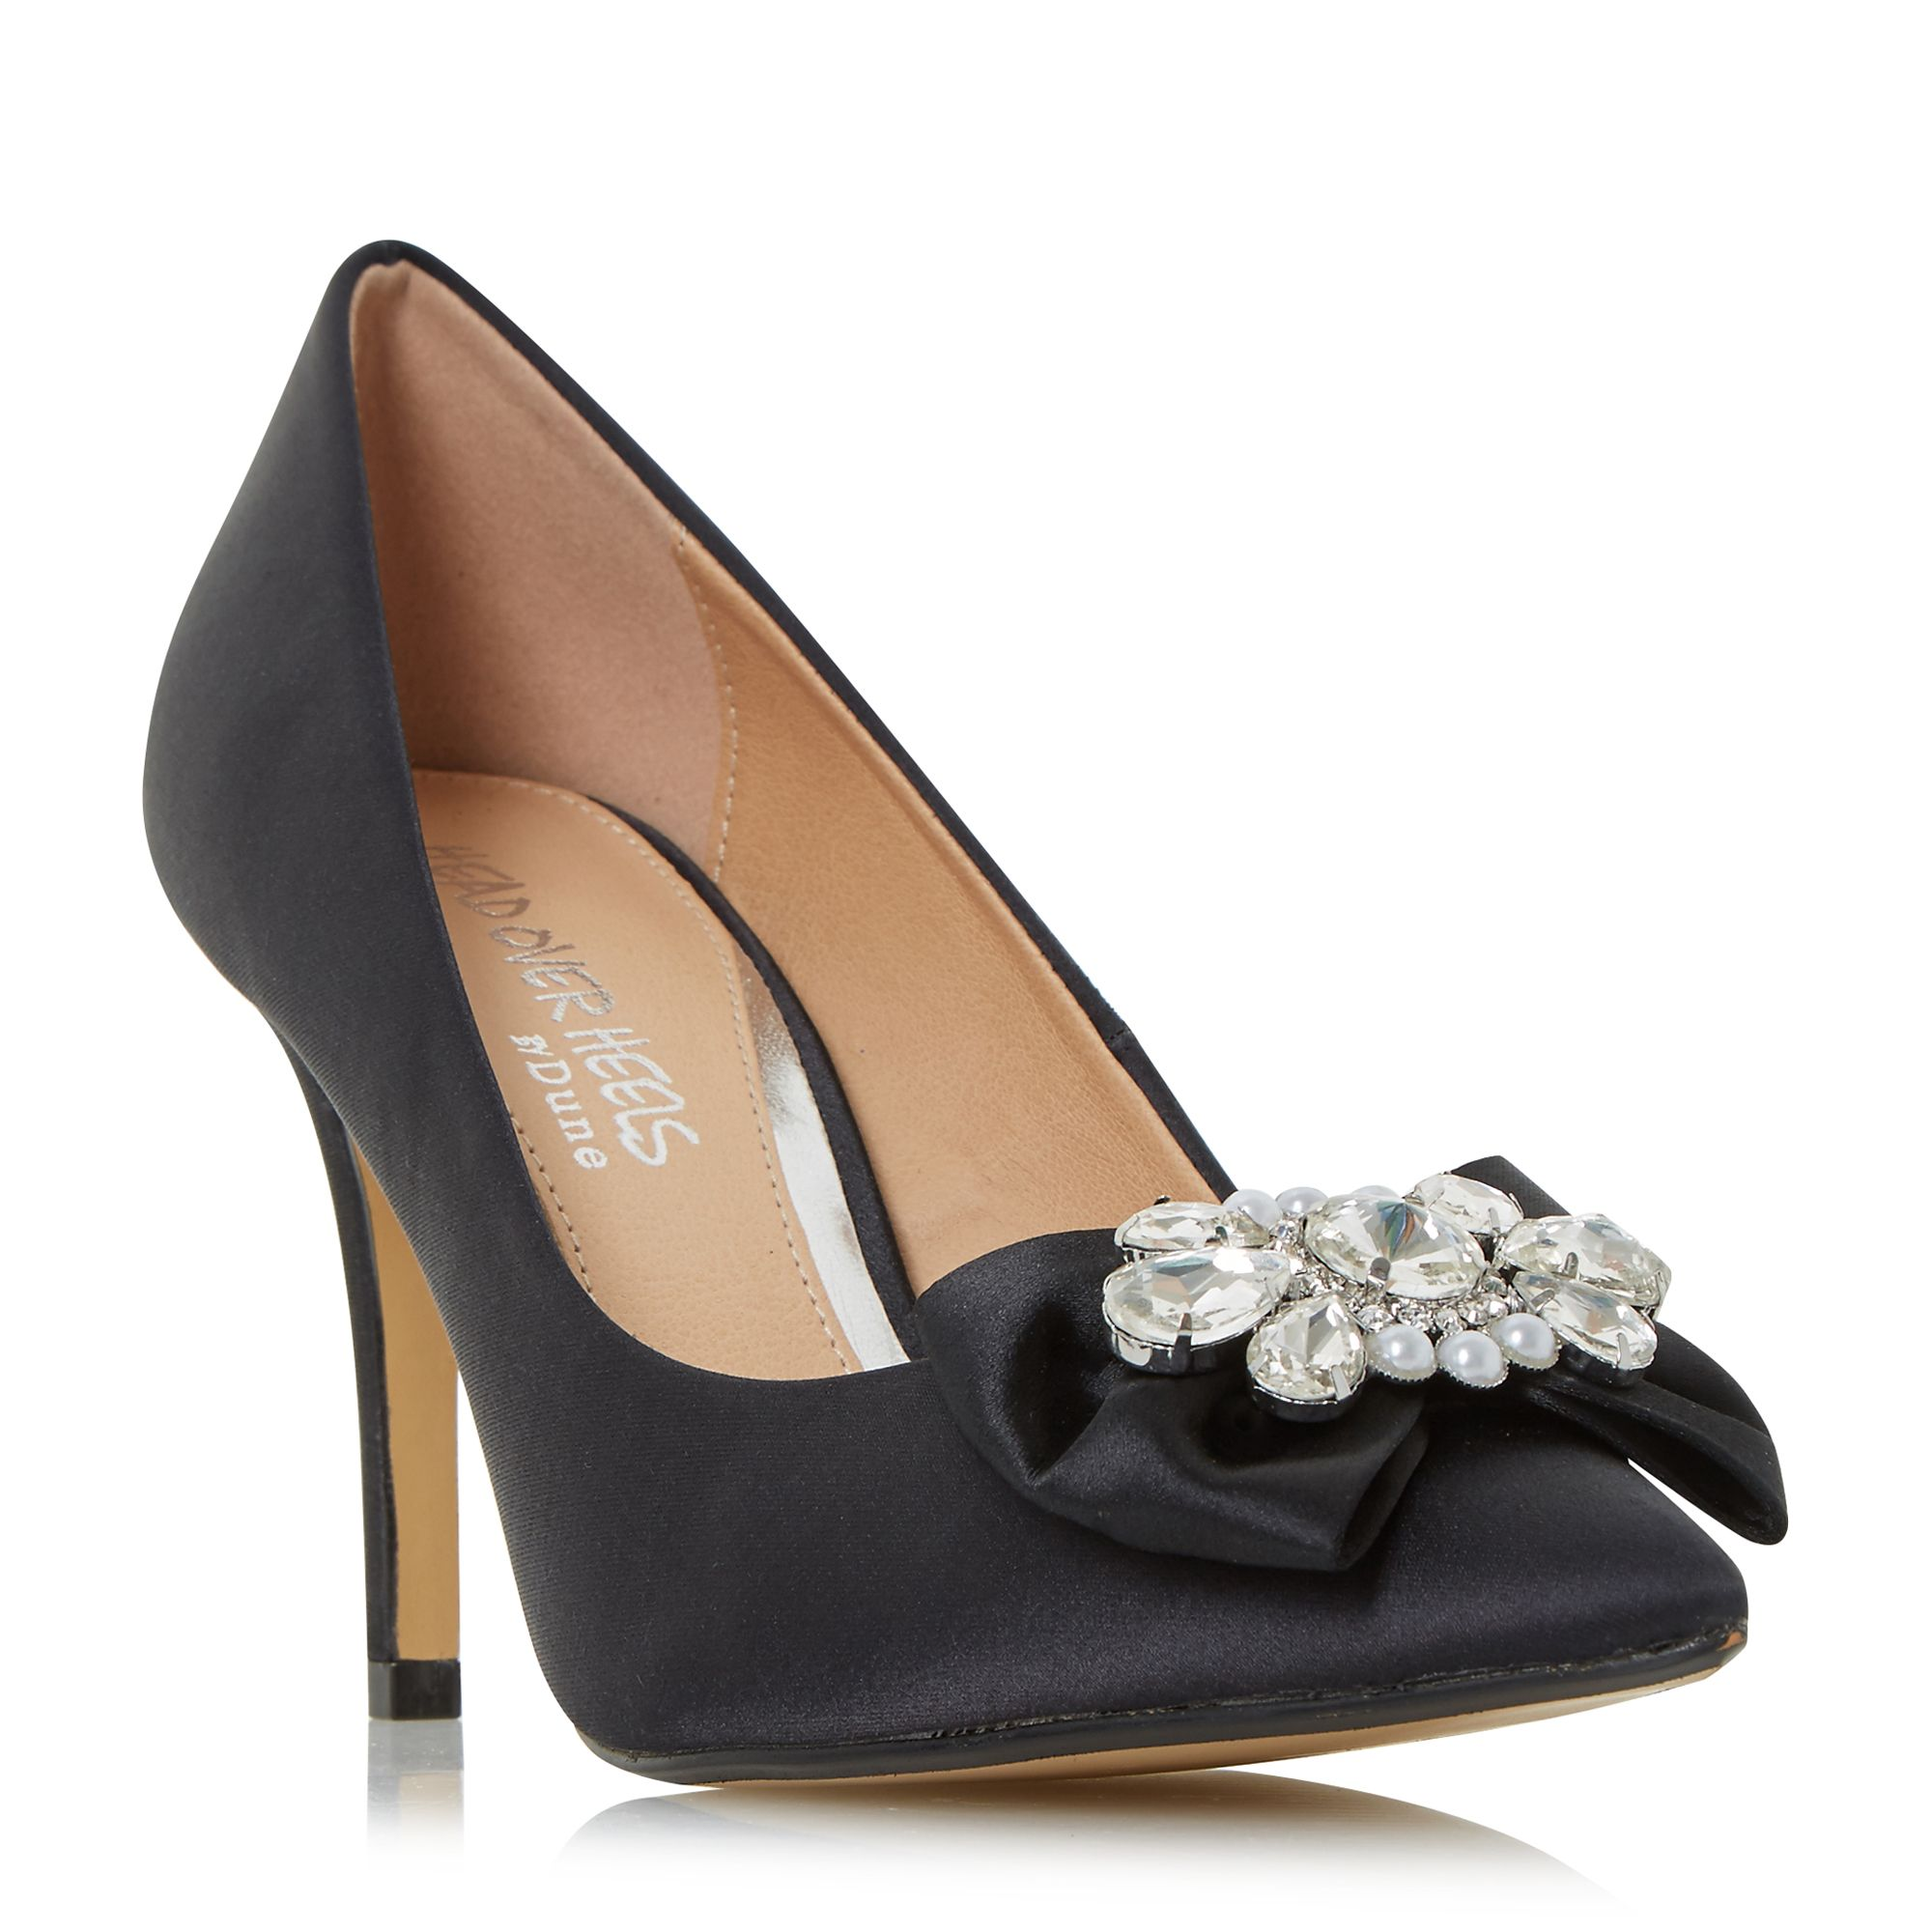 Head Over Heels Addore Pearl Trim Court Shoes, Black